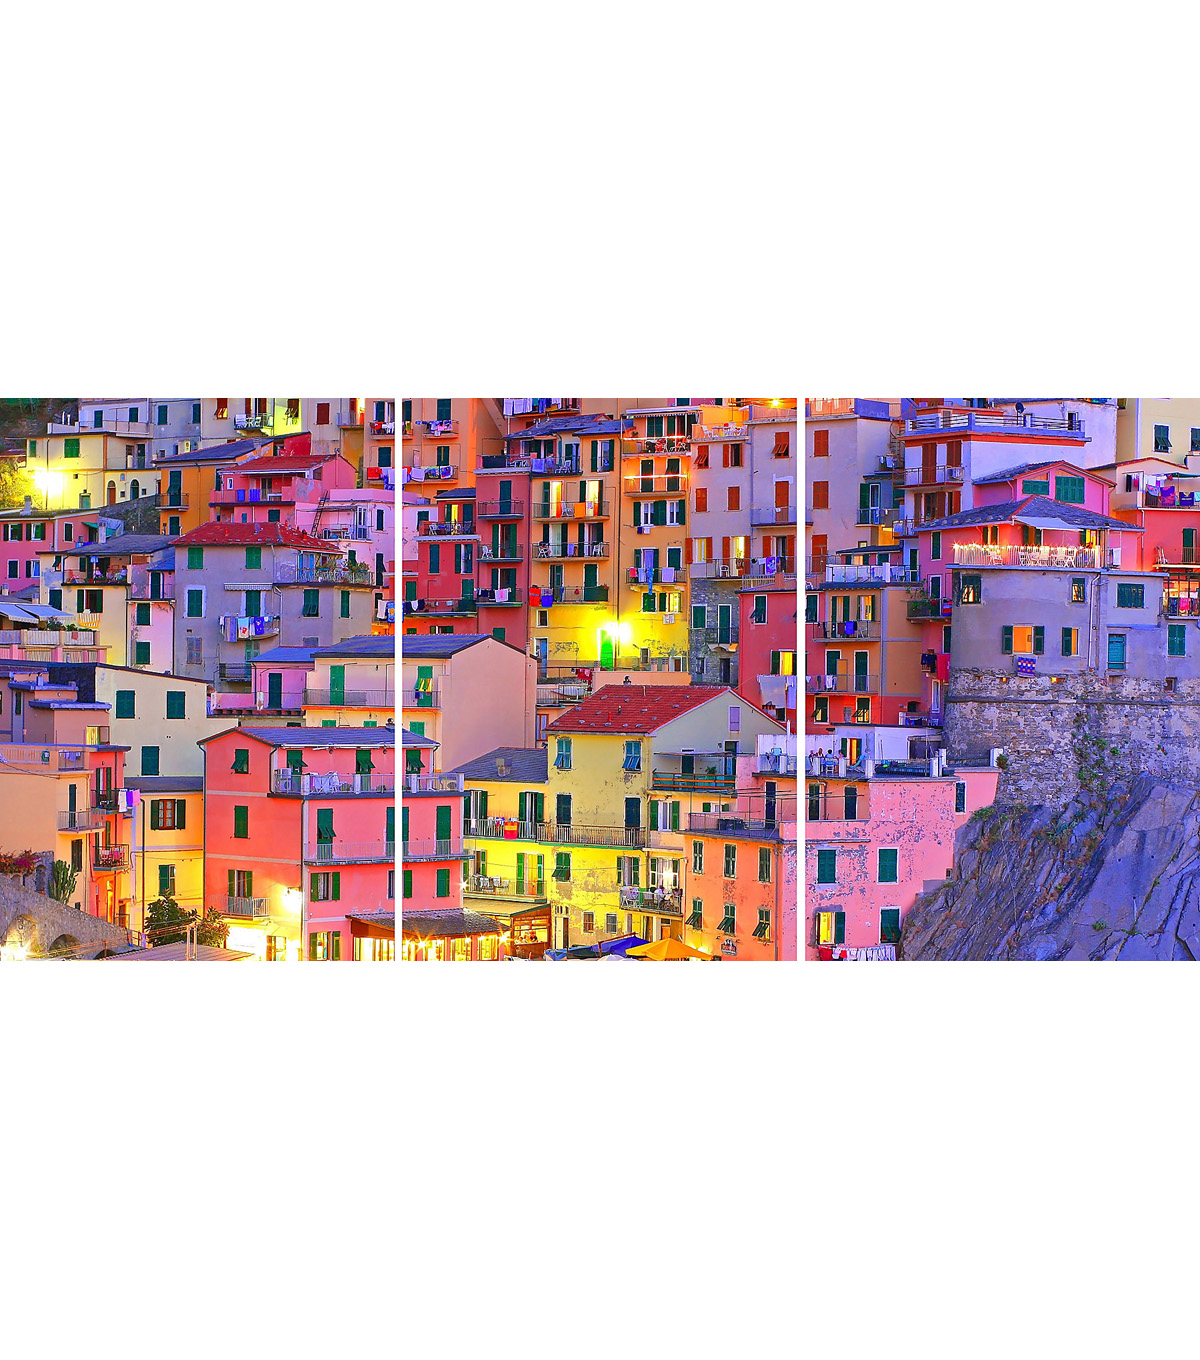 Home Decor Colorful Town Panoramic Wall Decal, 3 Piece Set